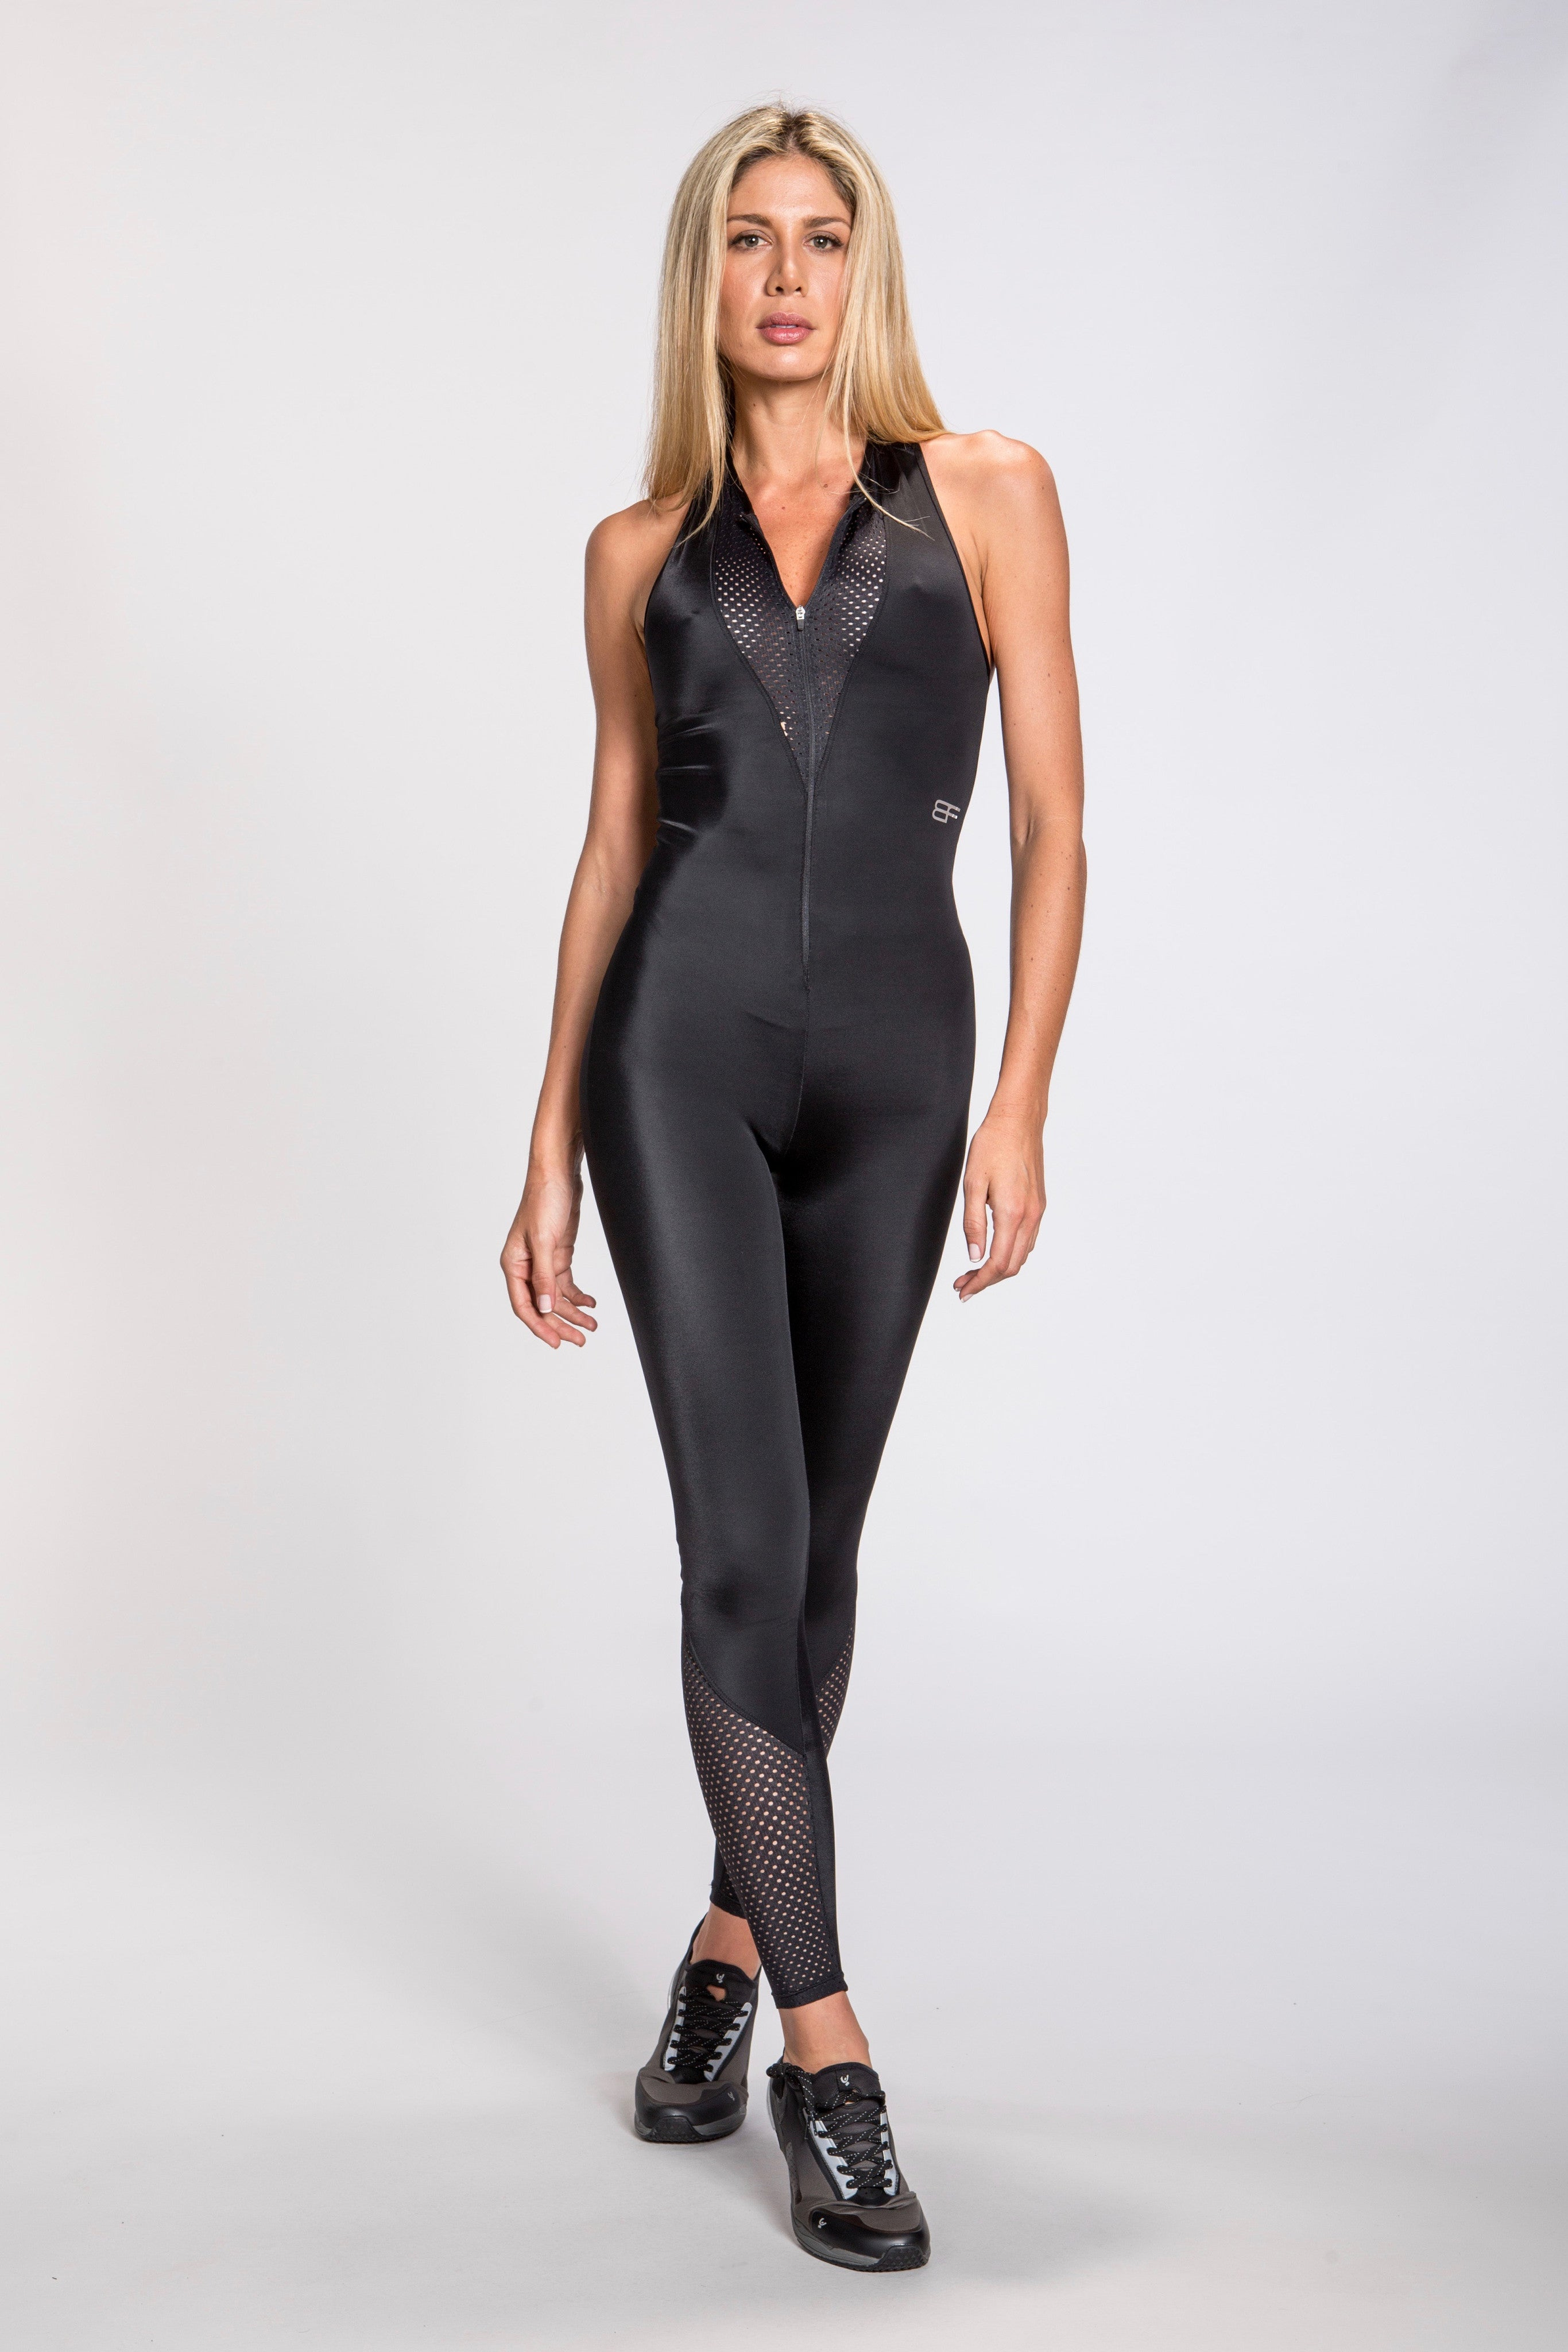 Aero Mesh Jumpsuit - Black